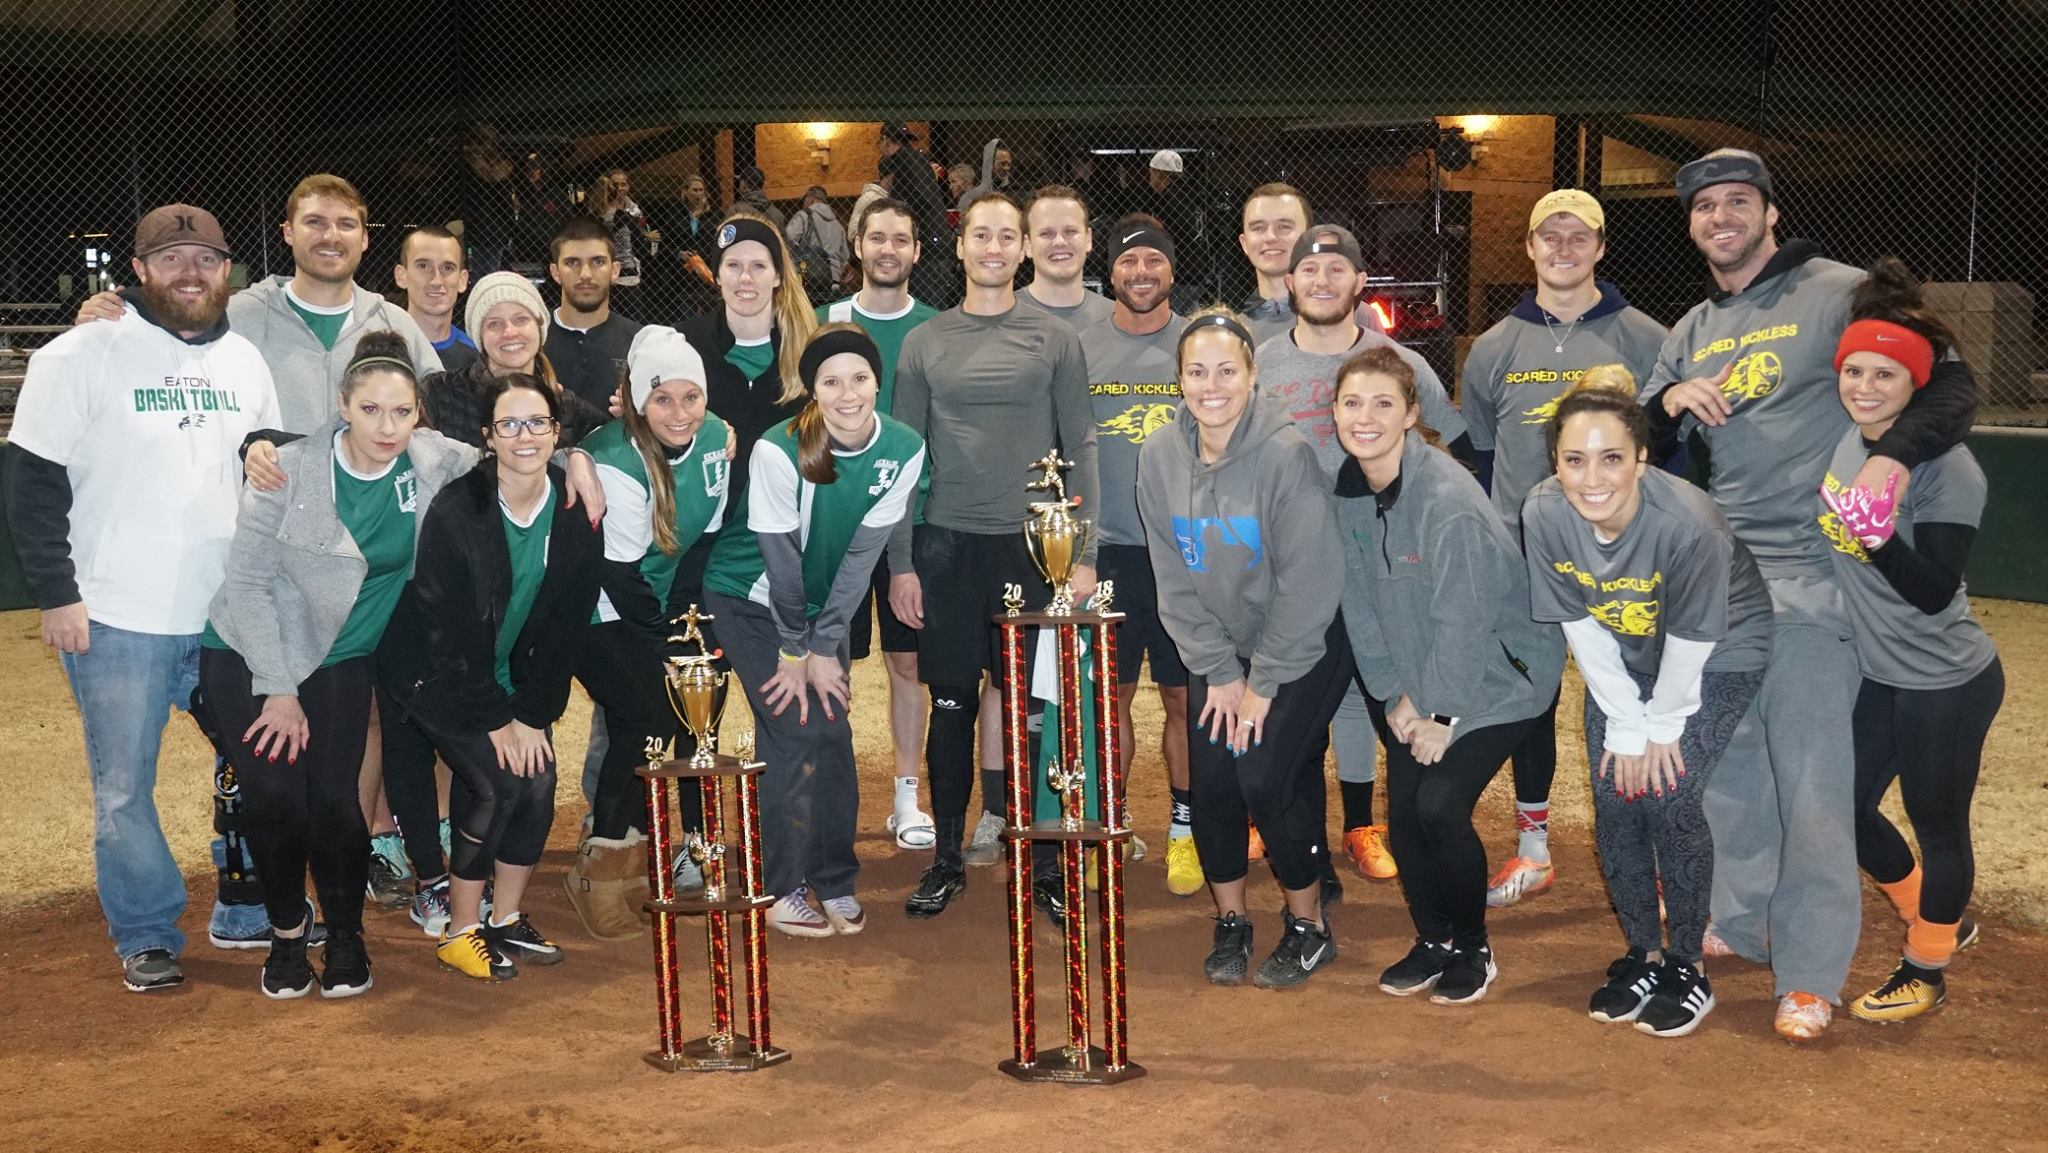 Two Kickball Teams with Trophies